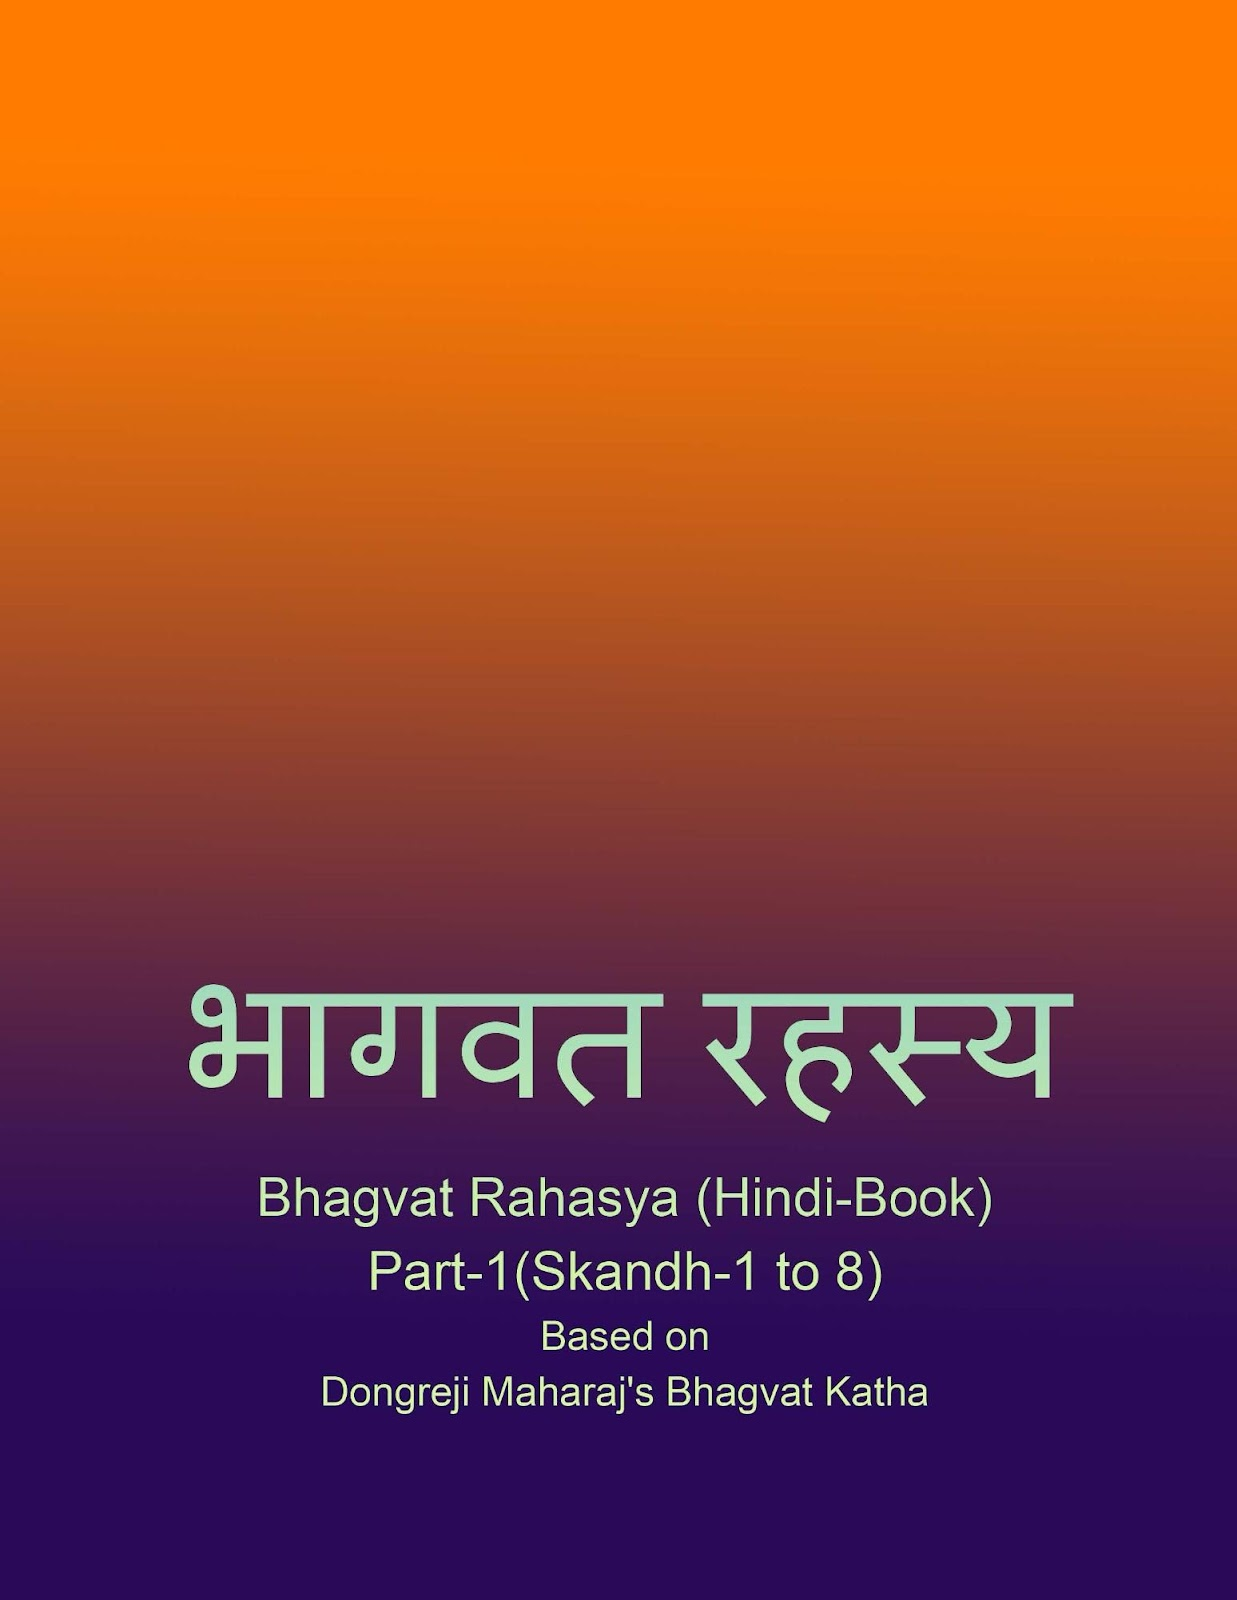 HindiBhagvat_Rahasy_Cover_Part-1.jpg